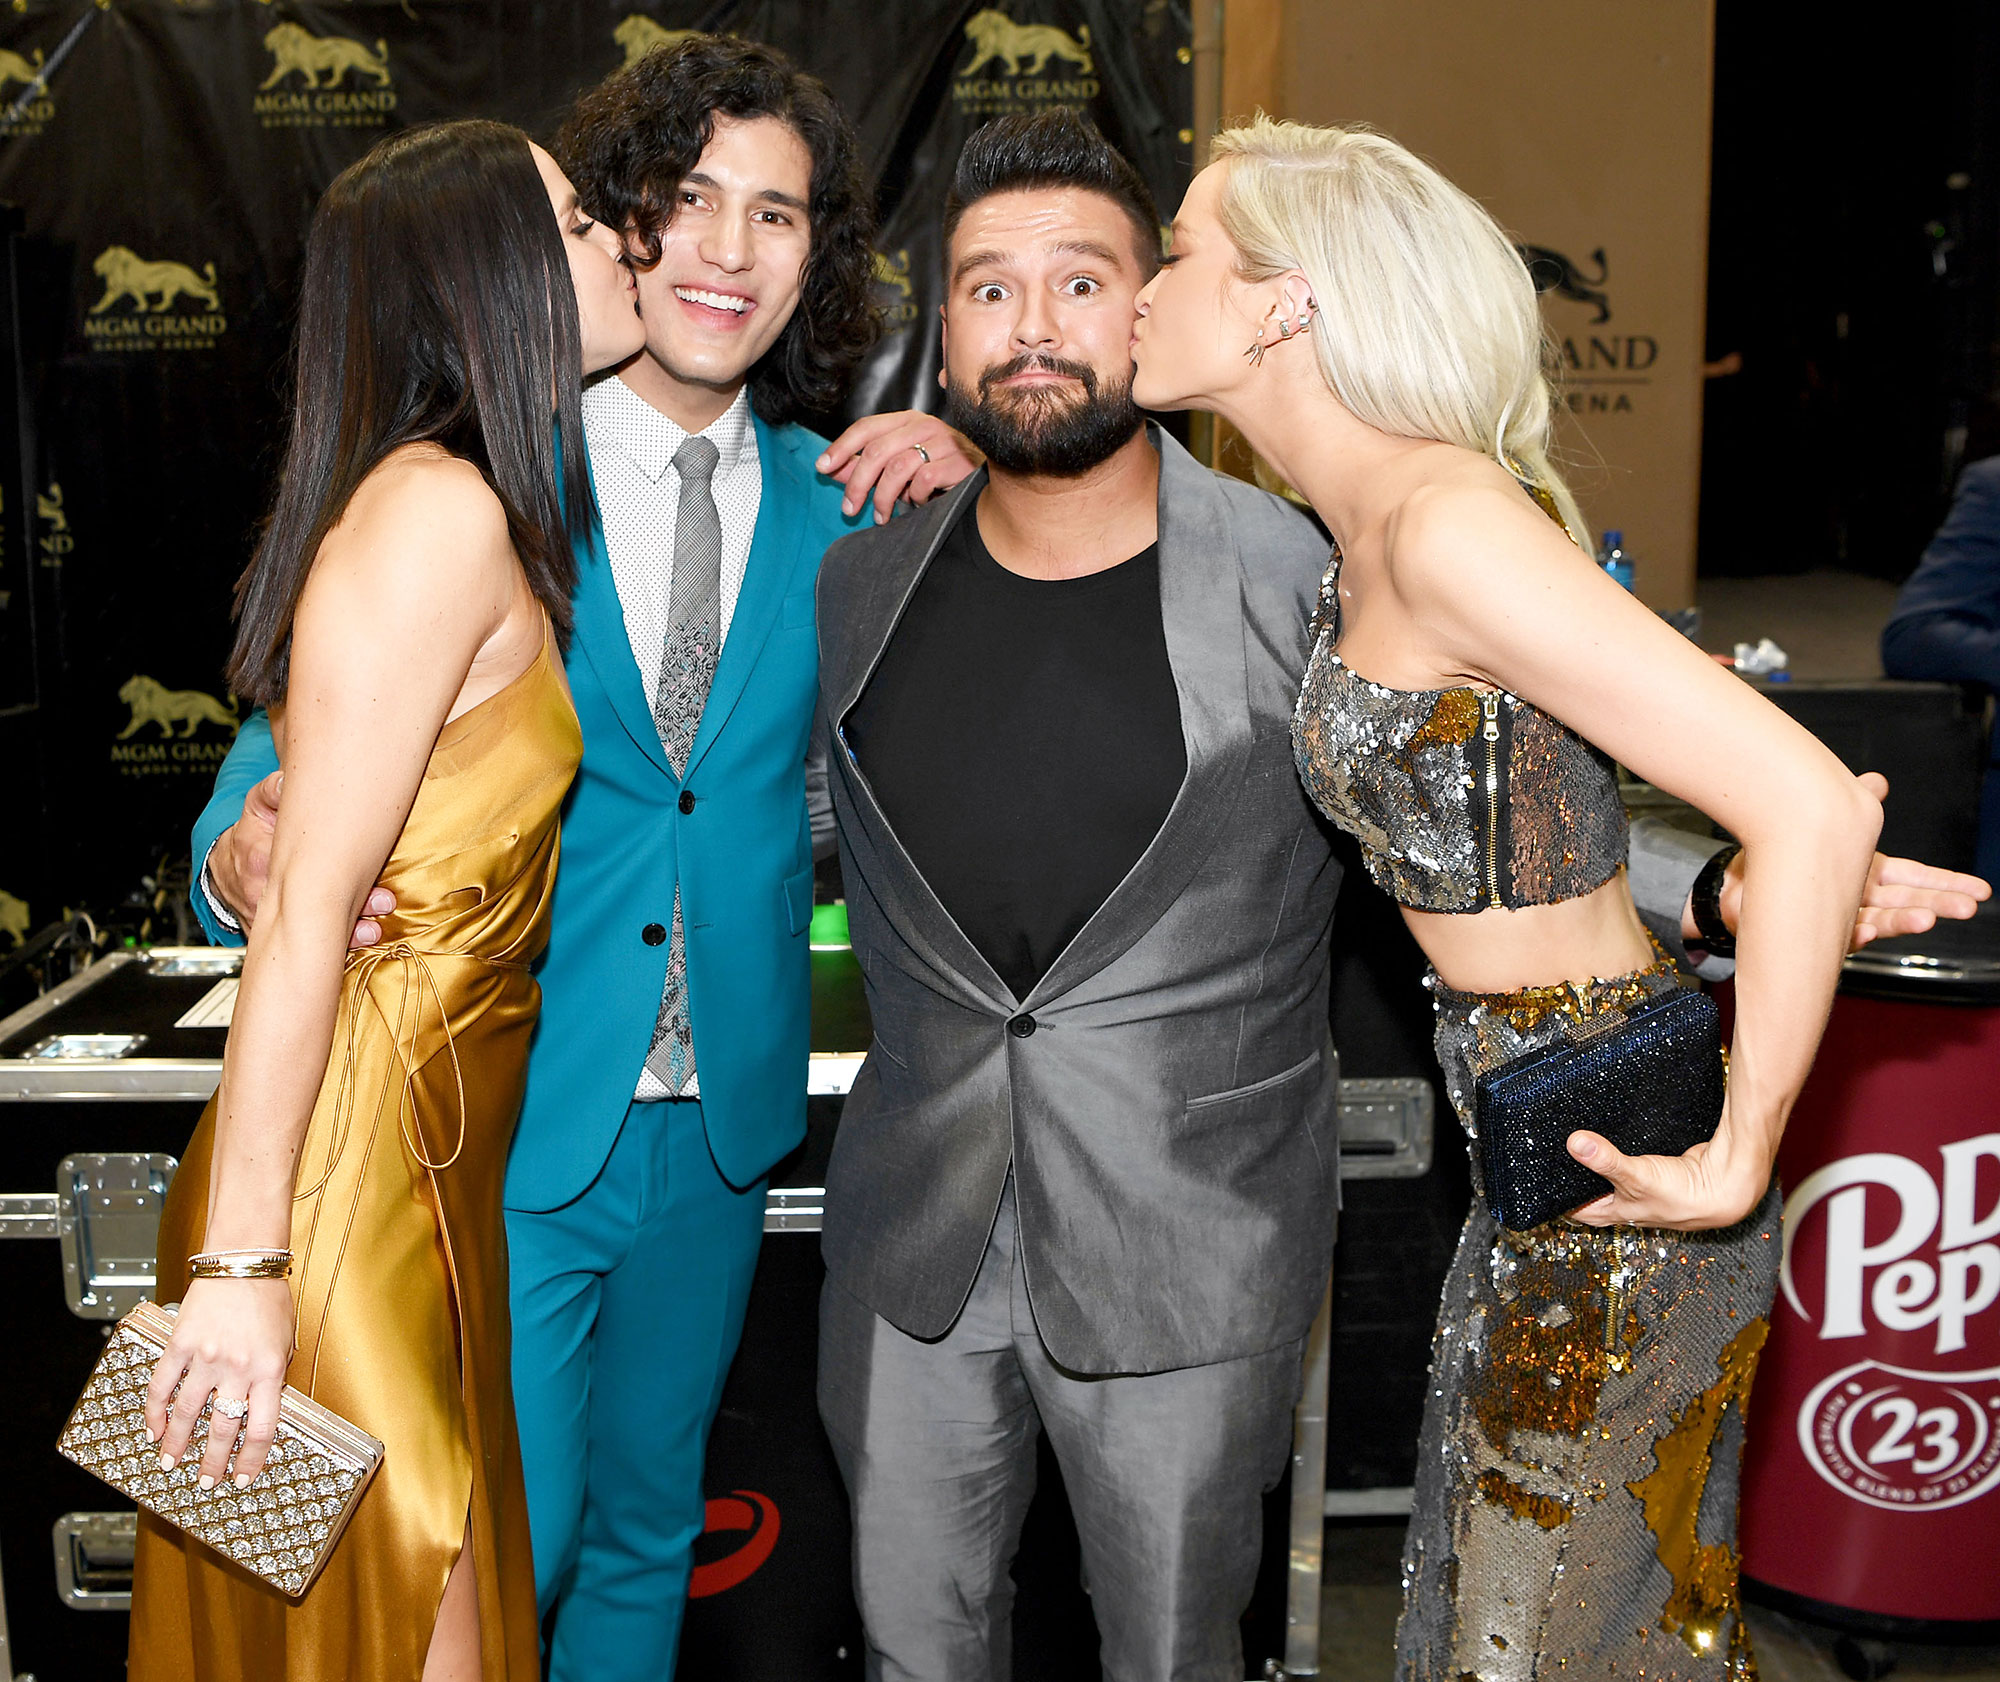 Inside ACM Awards 2019 Abby Law Dan Smyers Shay Mooney Hannah Billingsley - Dan + Shay stars Dan Smyers and Shay Moone y received smooches from their respective wives, Abby Law and Hannah Billingsley .